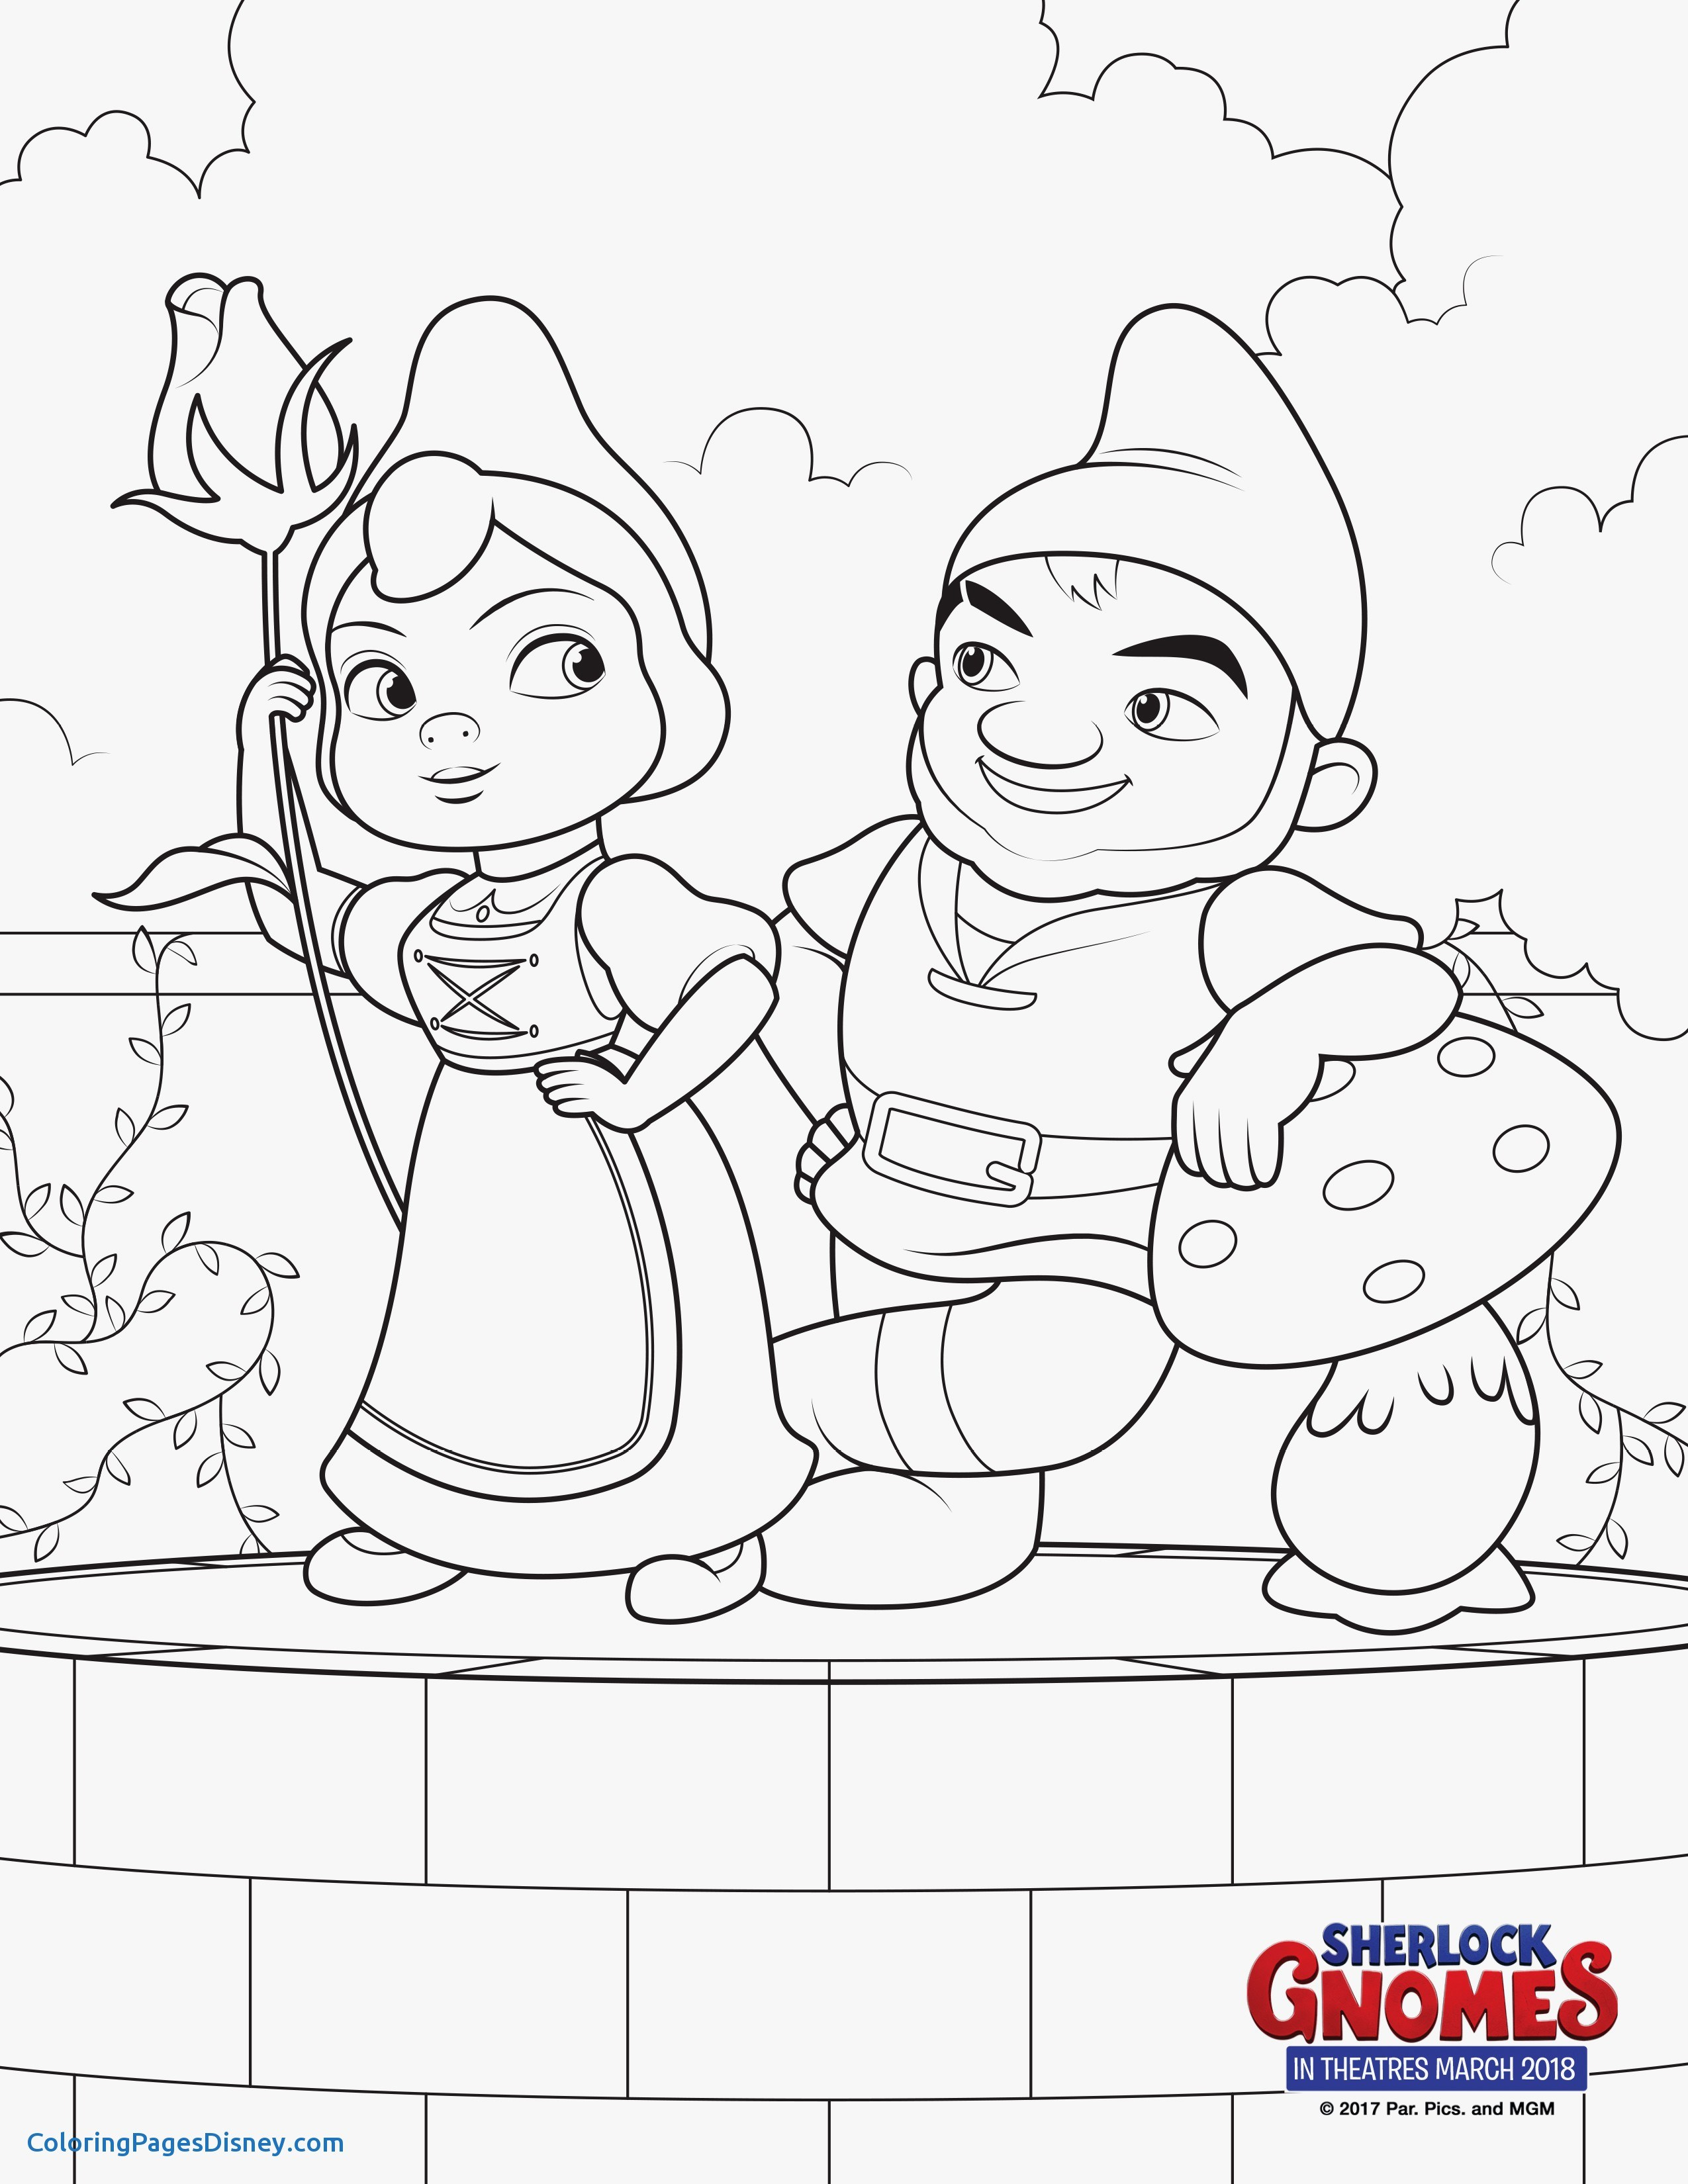 2550x3300 Gnomeo And Juliet Coloring Pages Inspirational Sherlock Gnomes